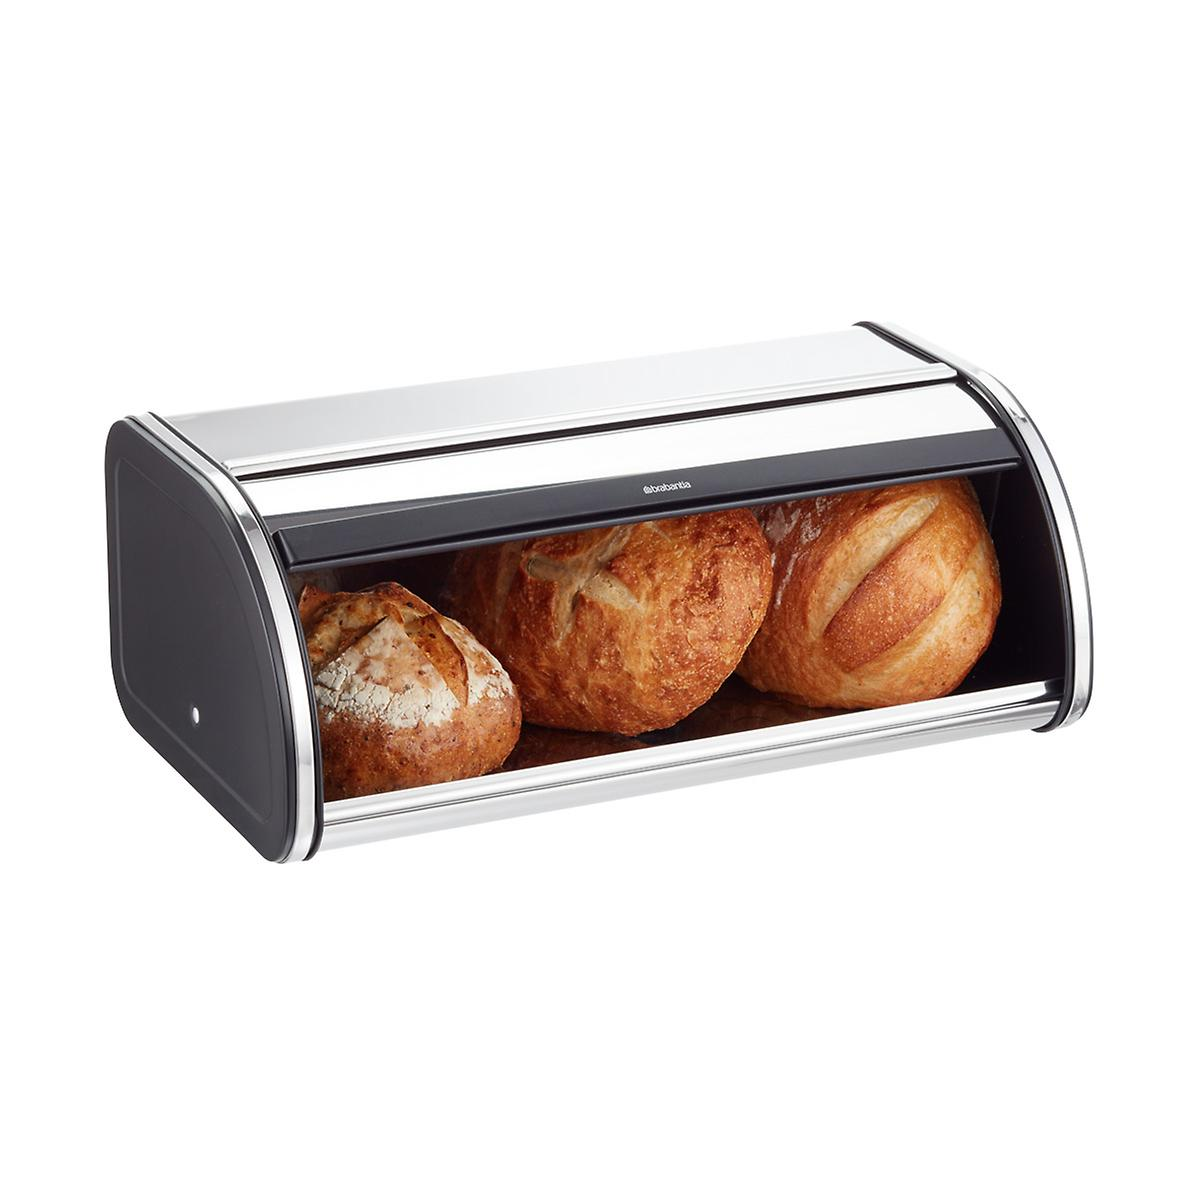 Bread Box Brabantia Chrome Bread Box The Container Store